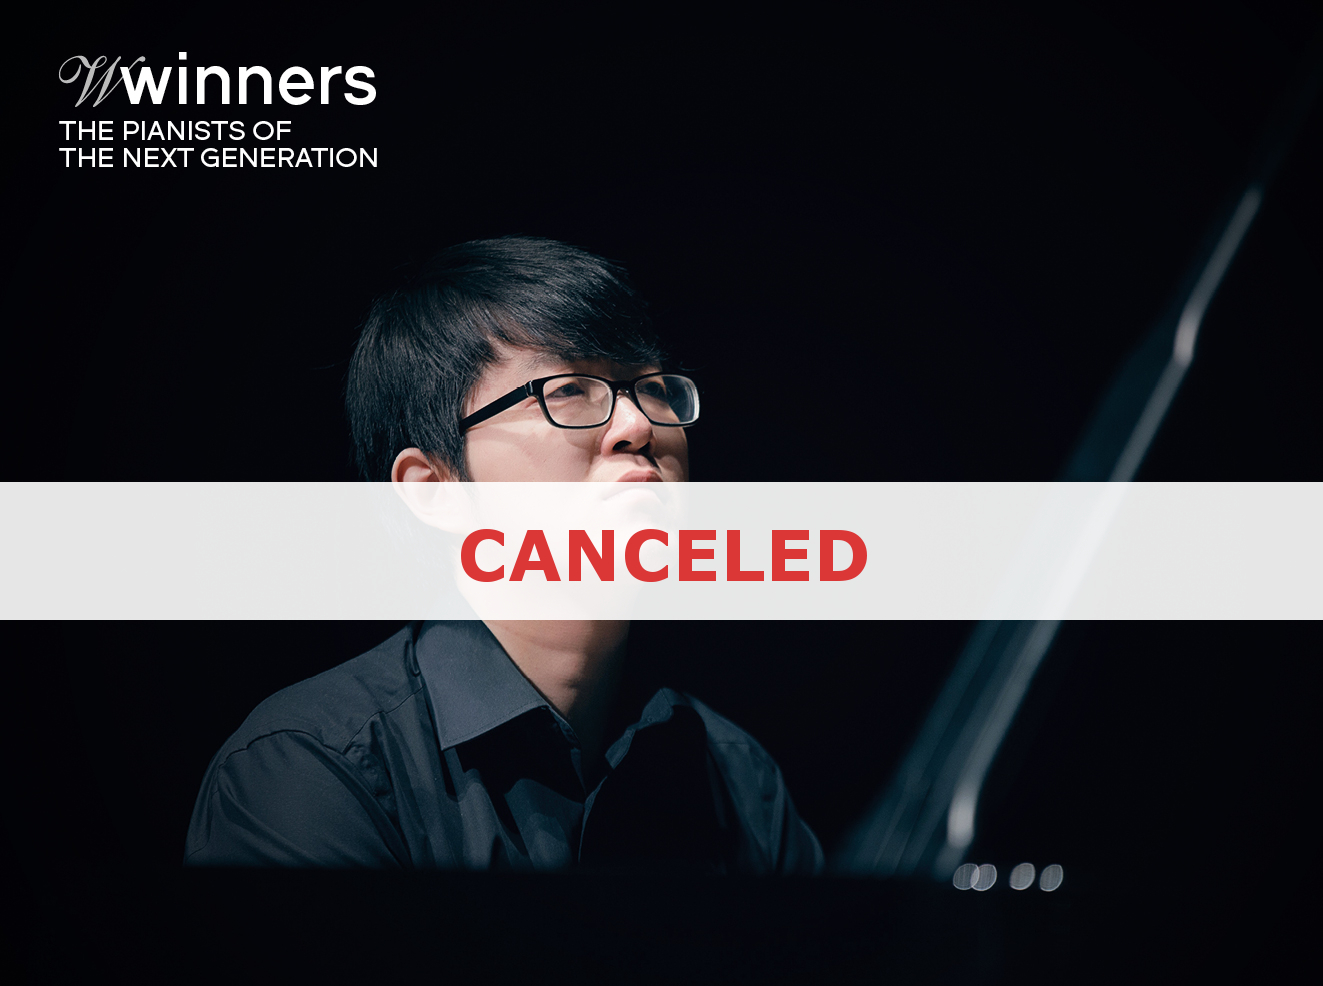 Cunmo Yin's concert has been canceled